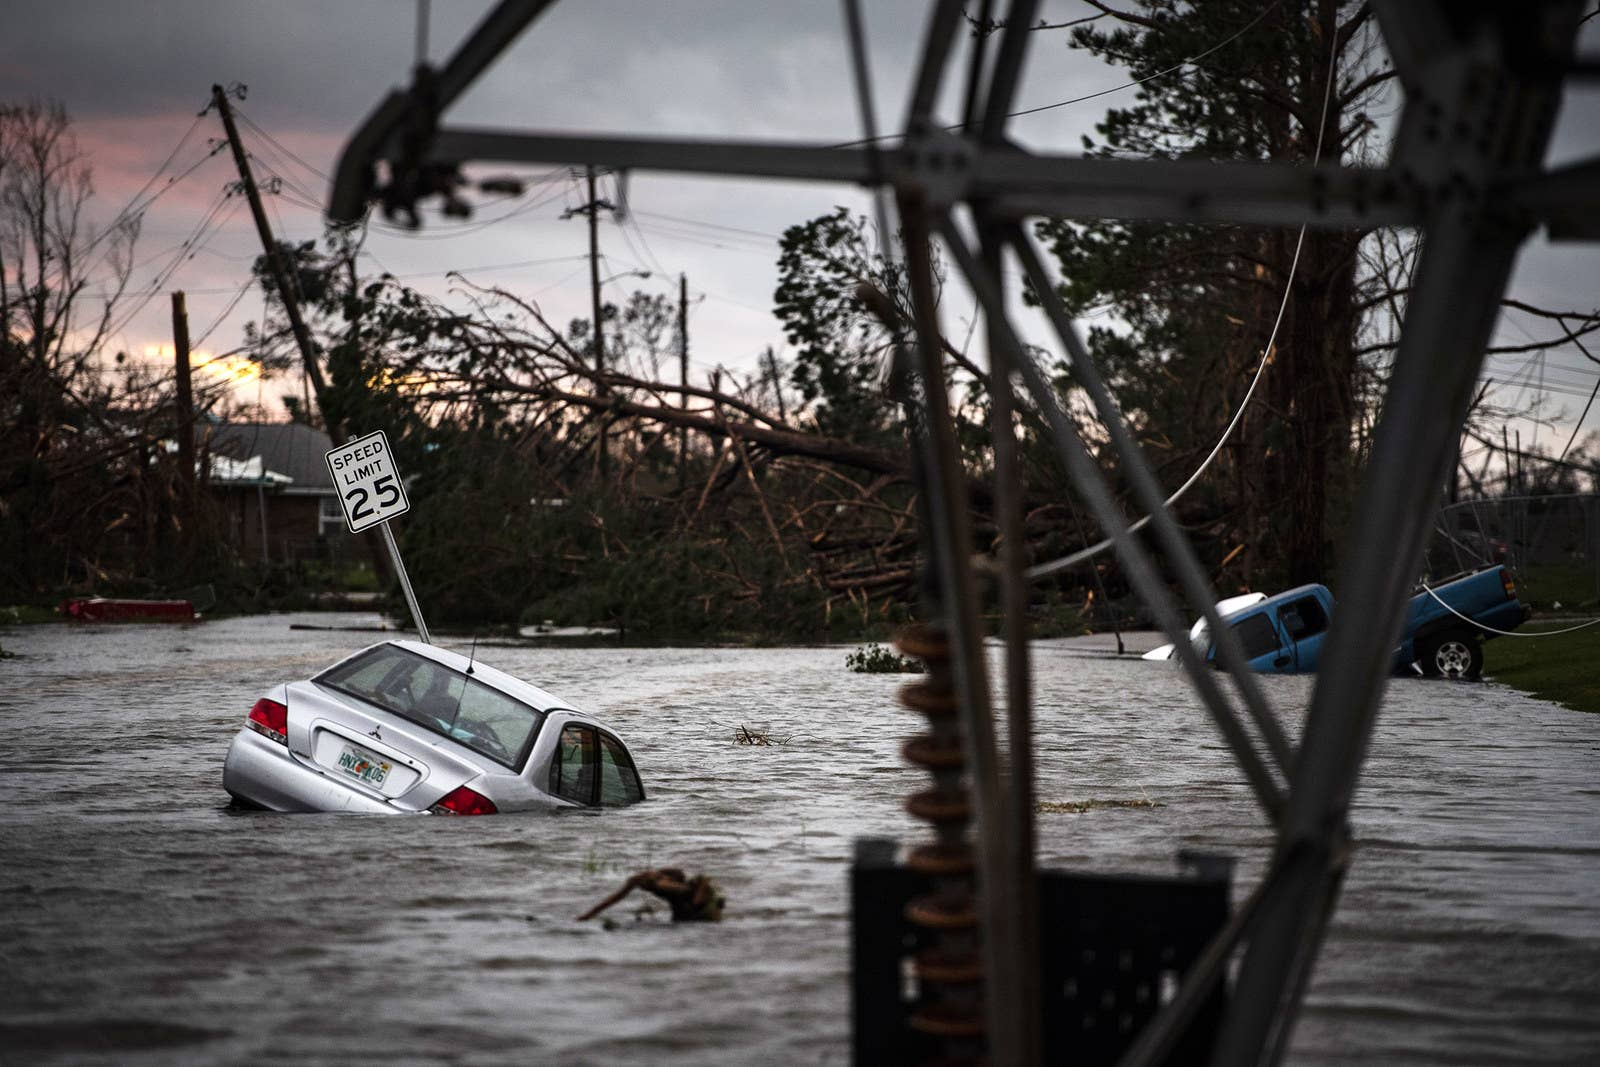 A car is seen caught in flood waters in Panama City, Florida.